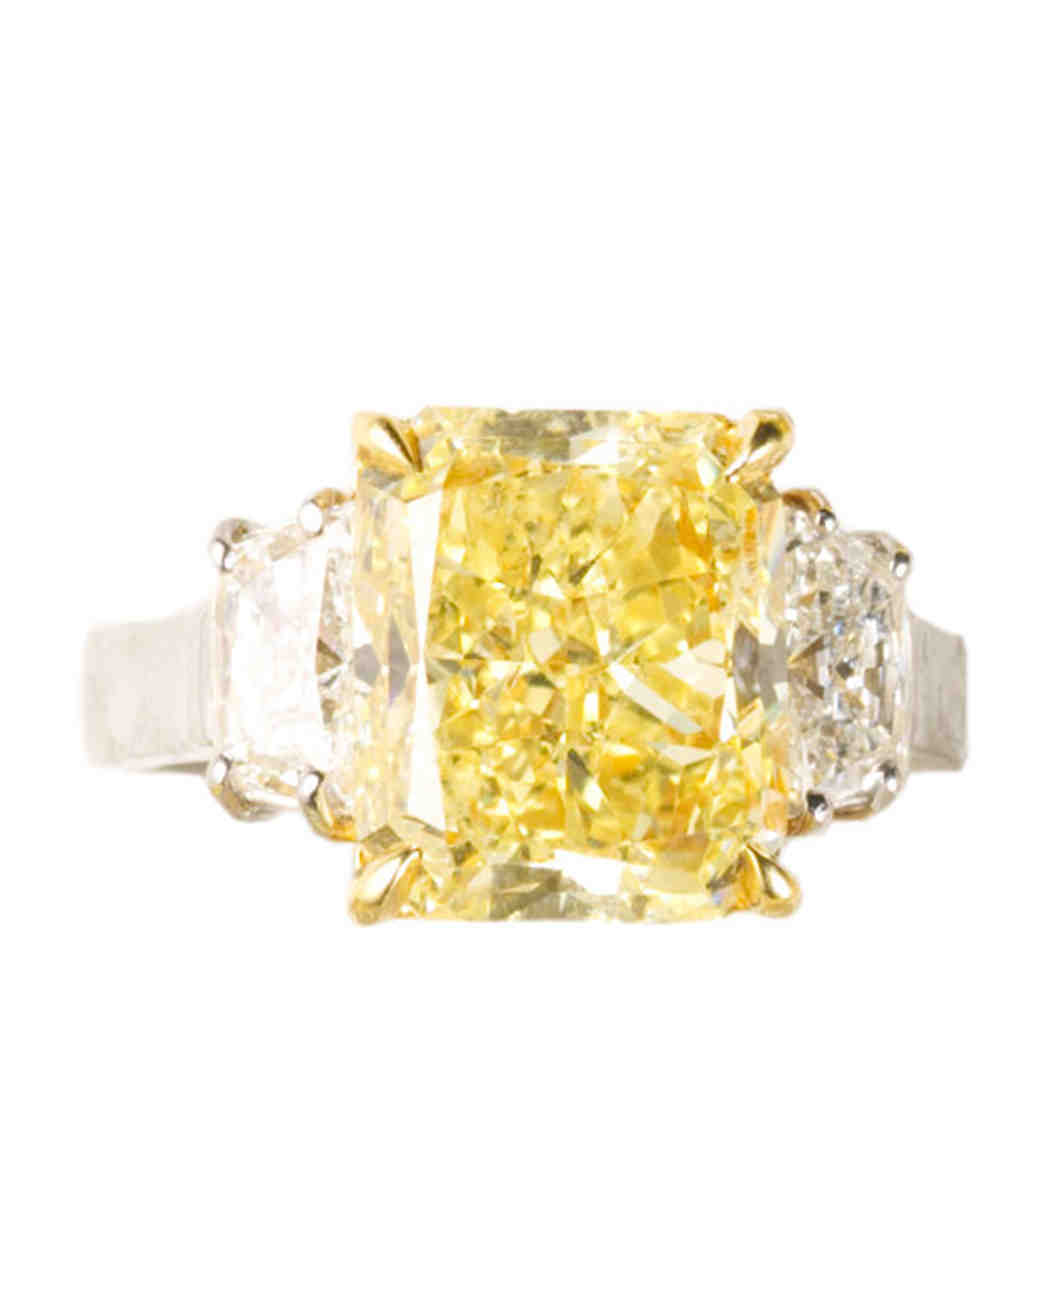 msw_sum10_yellow_ring_debeers.jpg